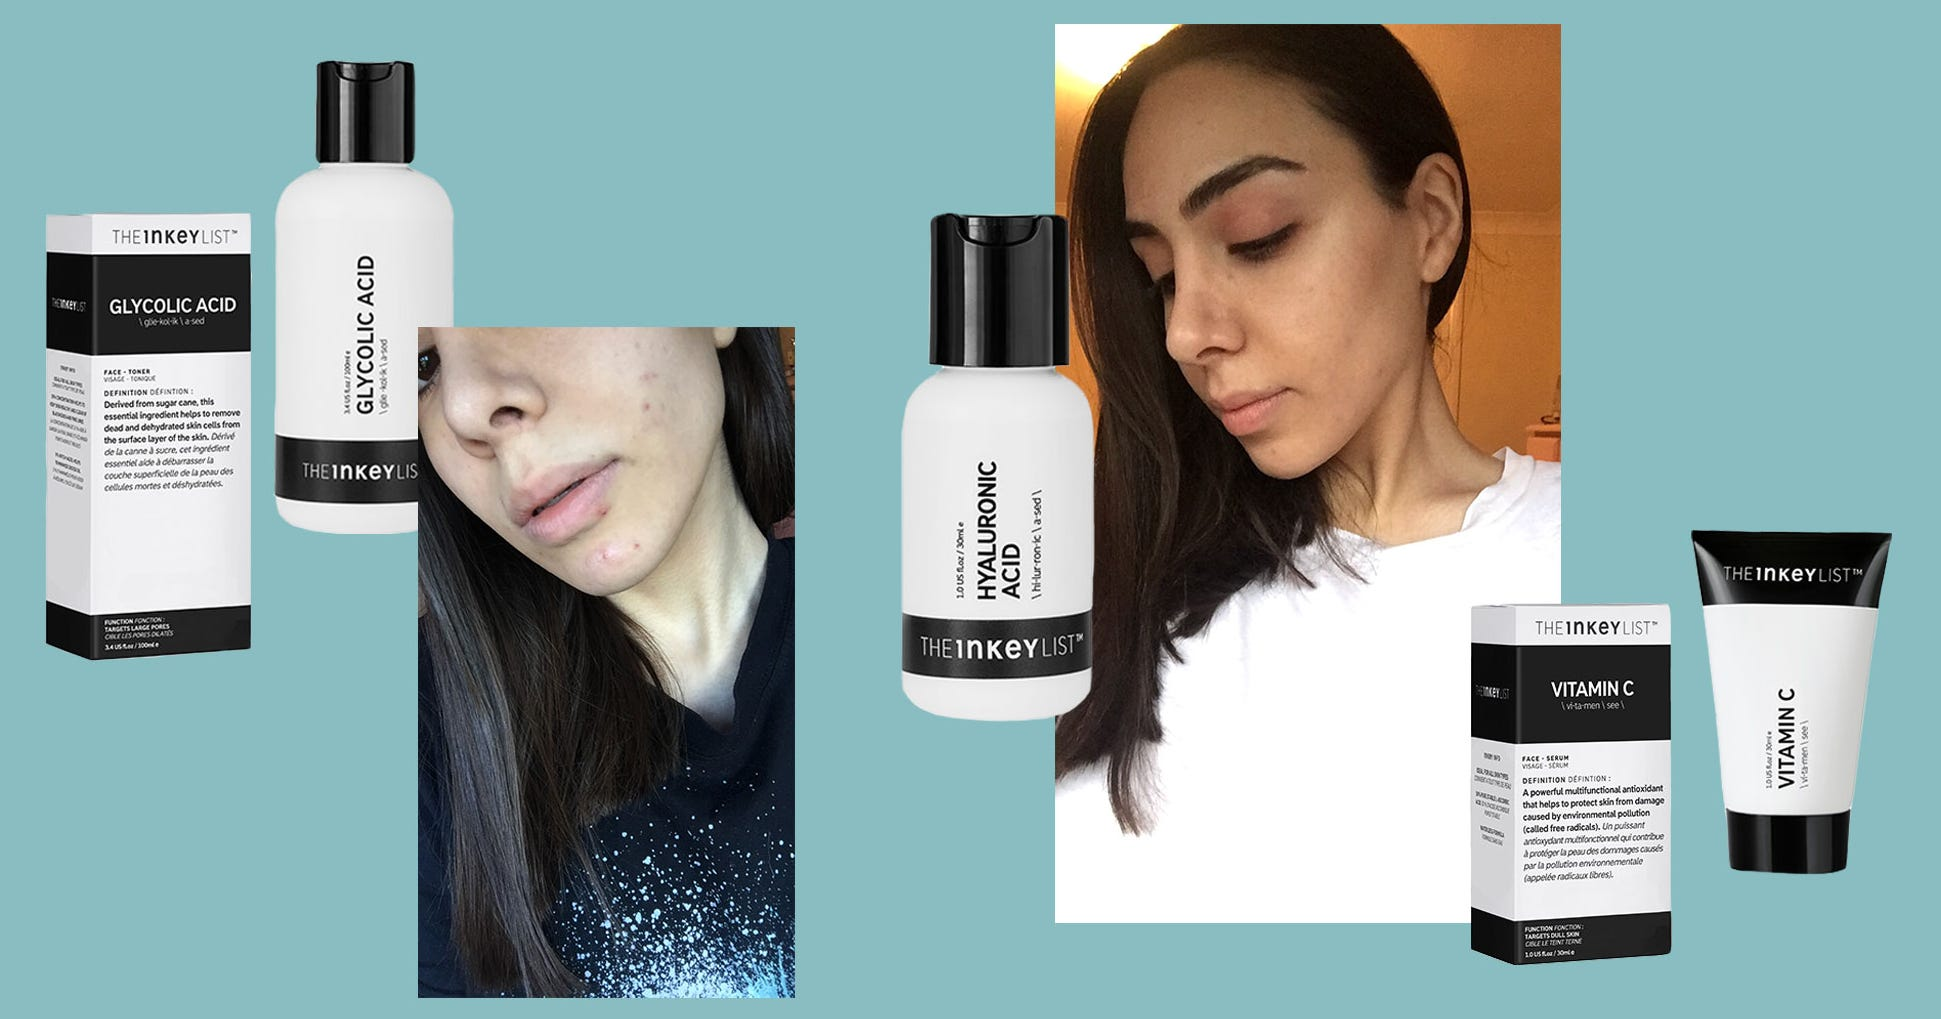 This New Skincare Brand Is Said To Rival The Ordinary – Here's Our Verdict